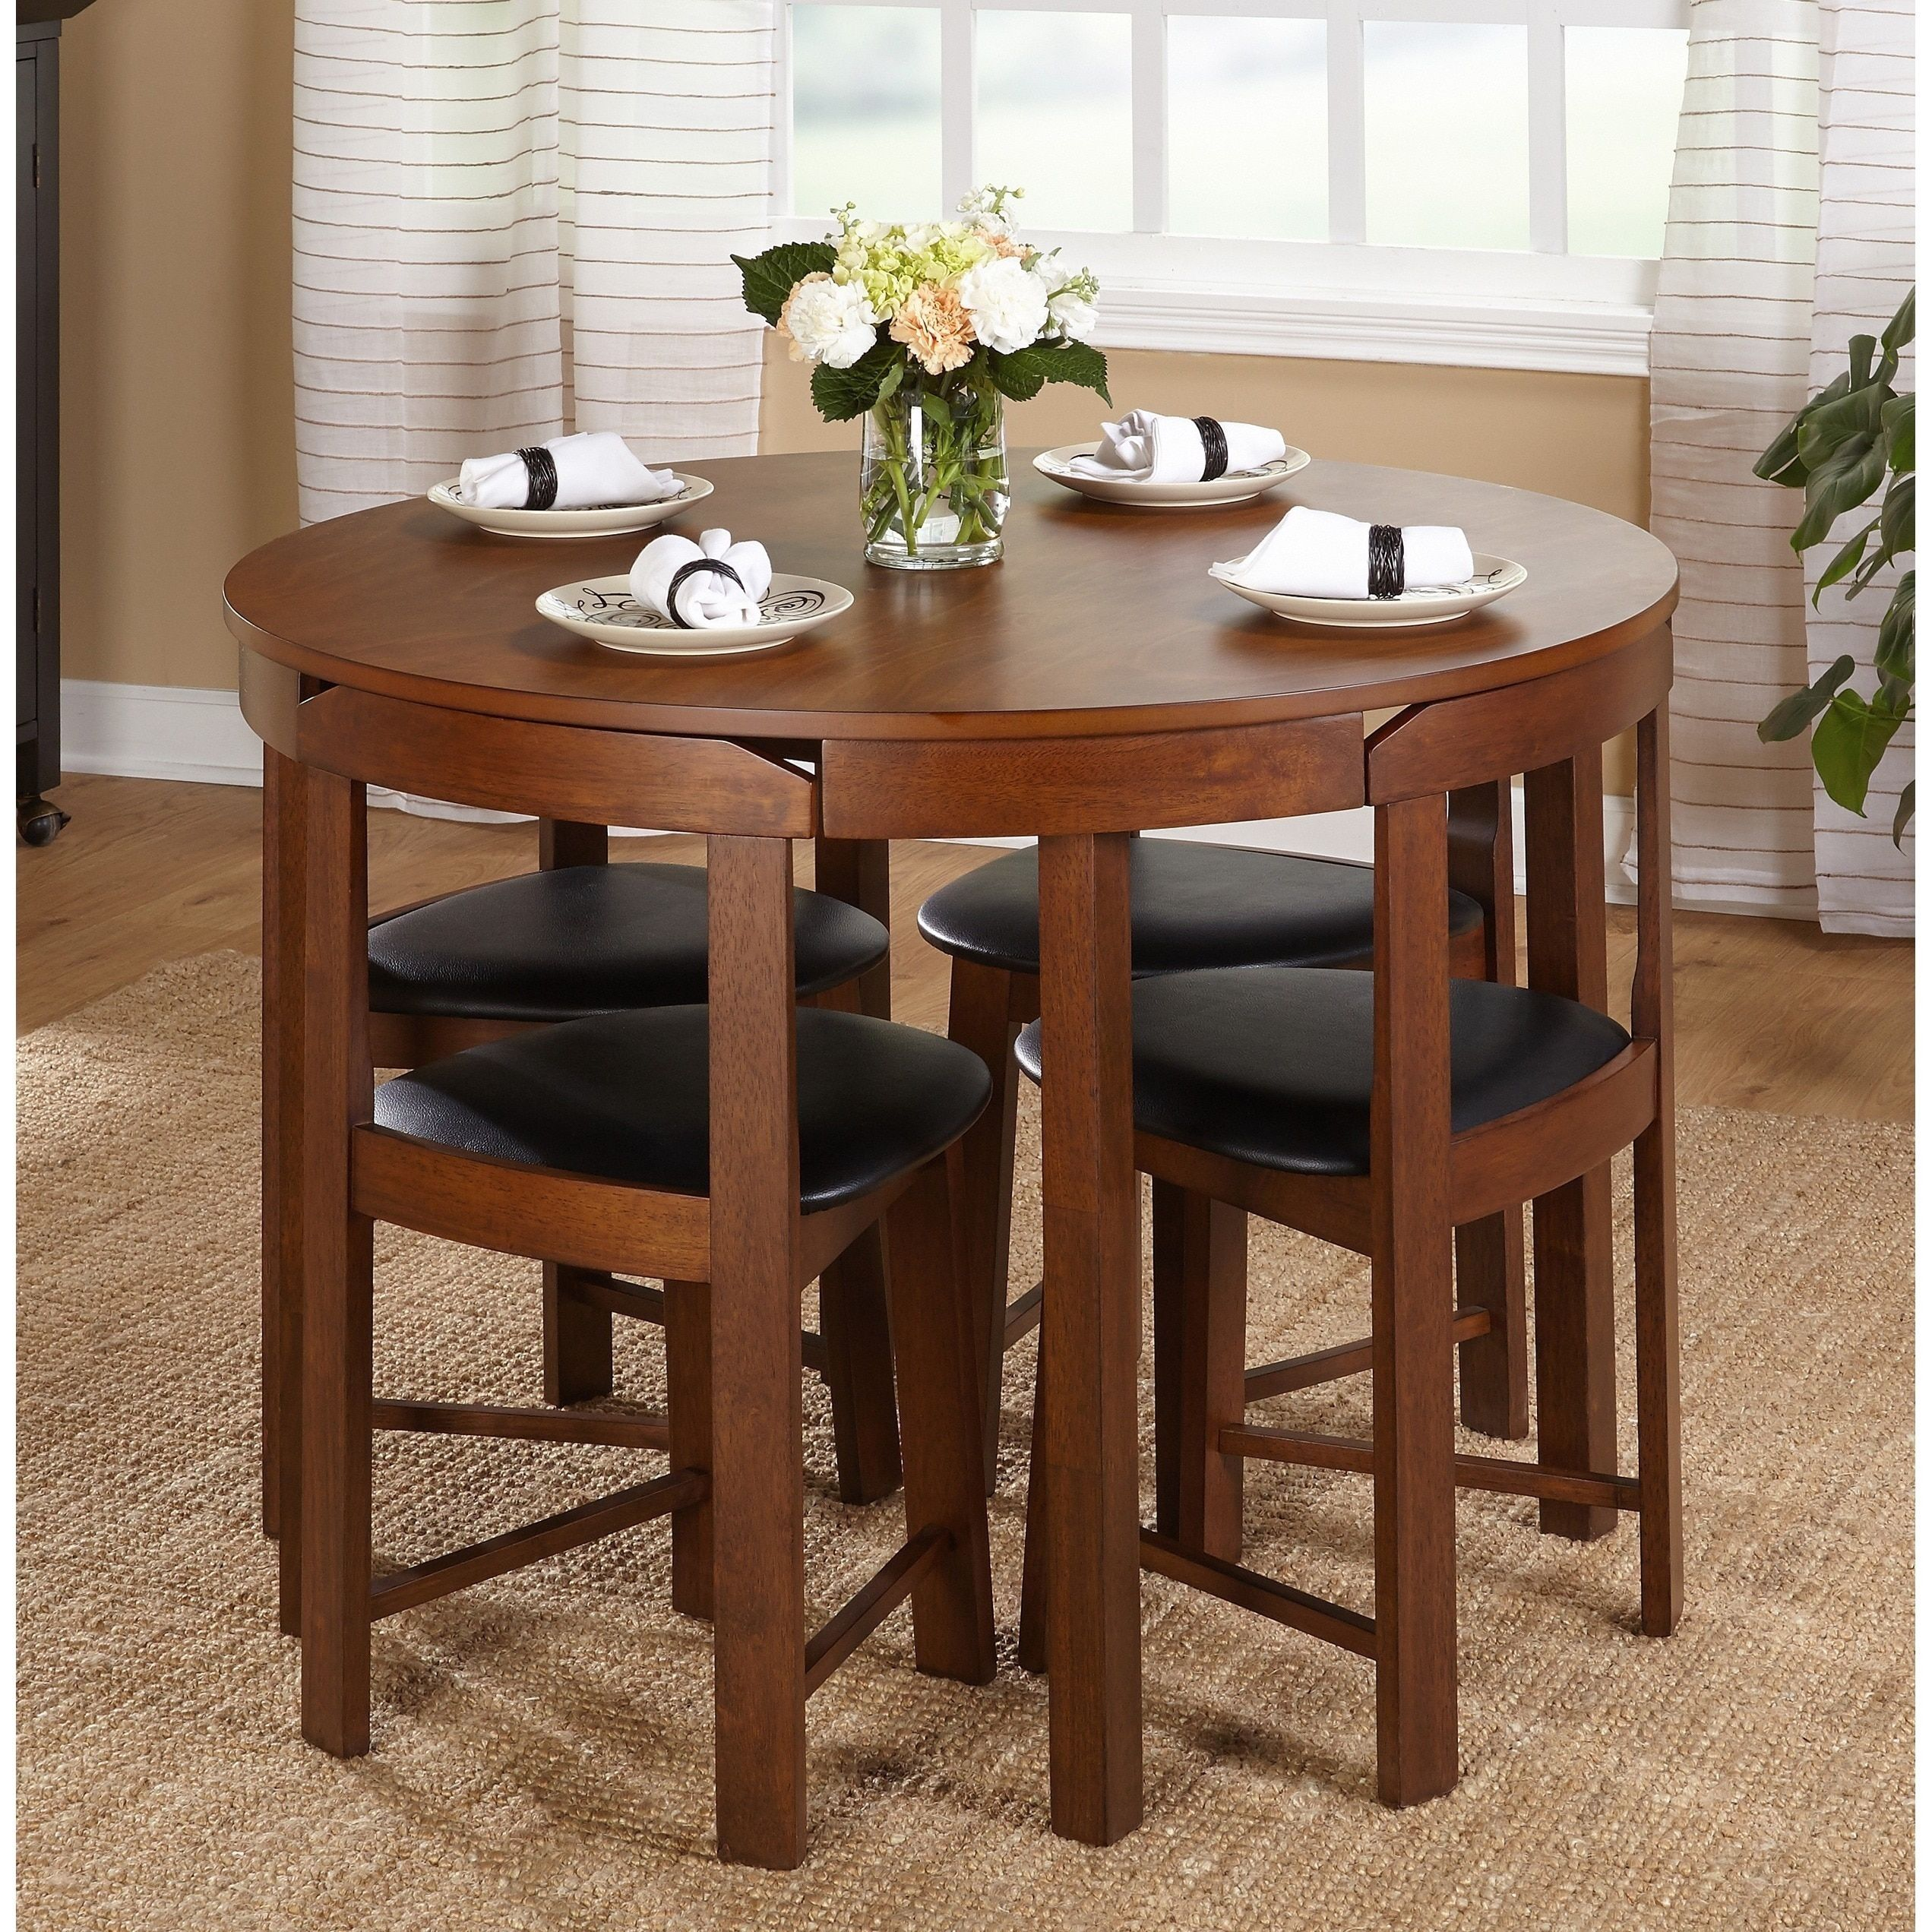 Dining Room Sets: Find the dining room table and chair set that fits ...